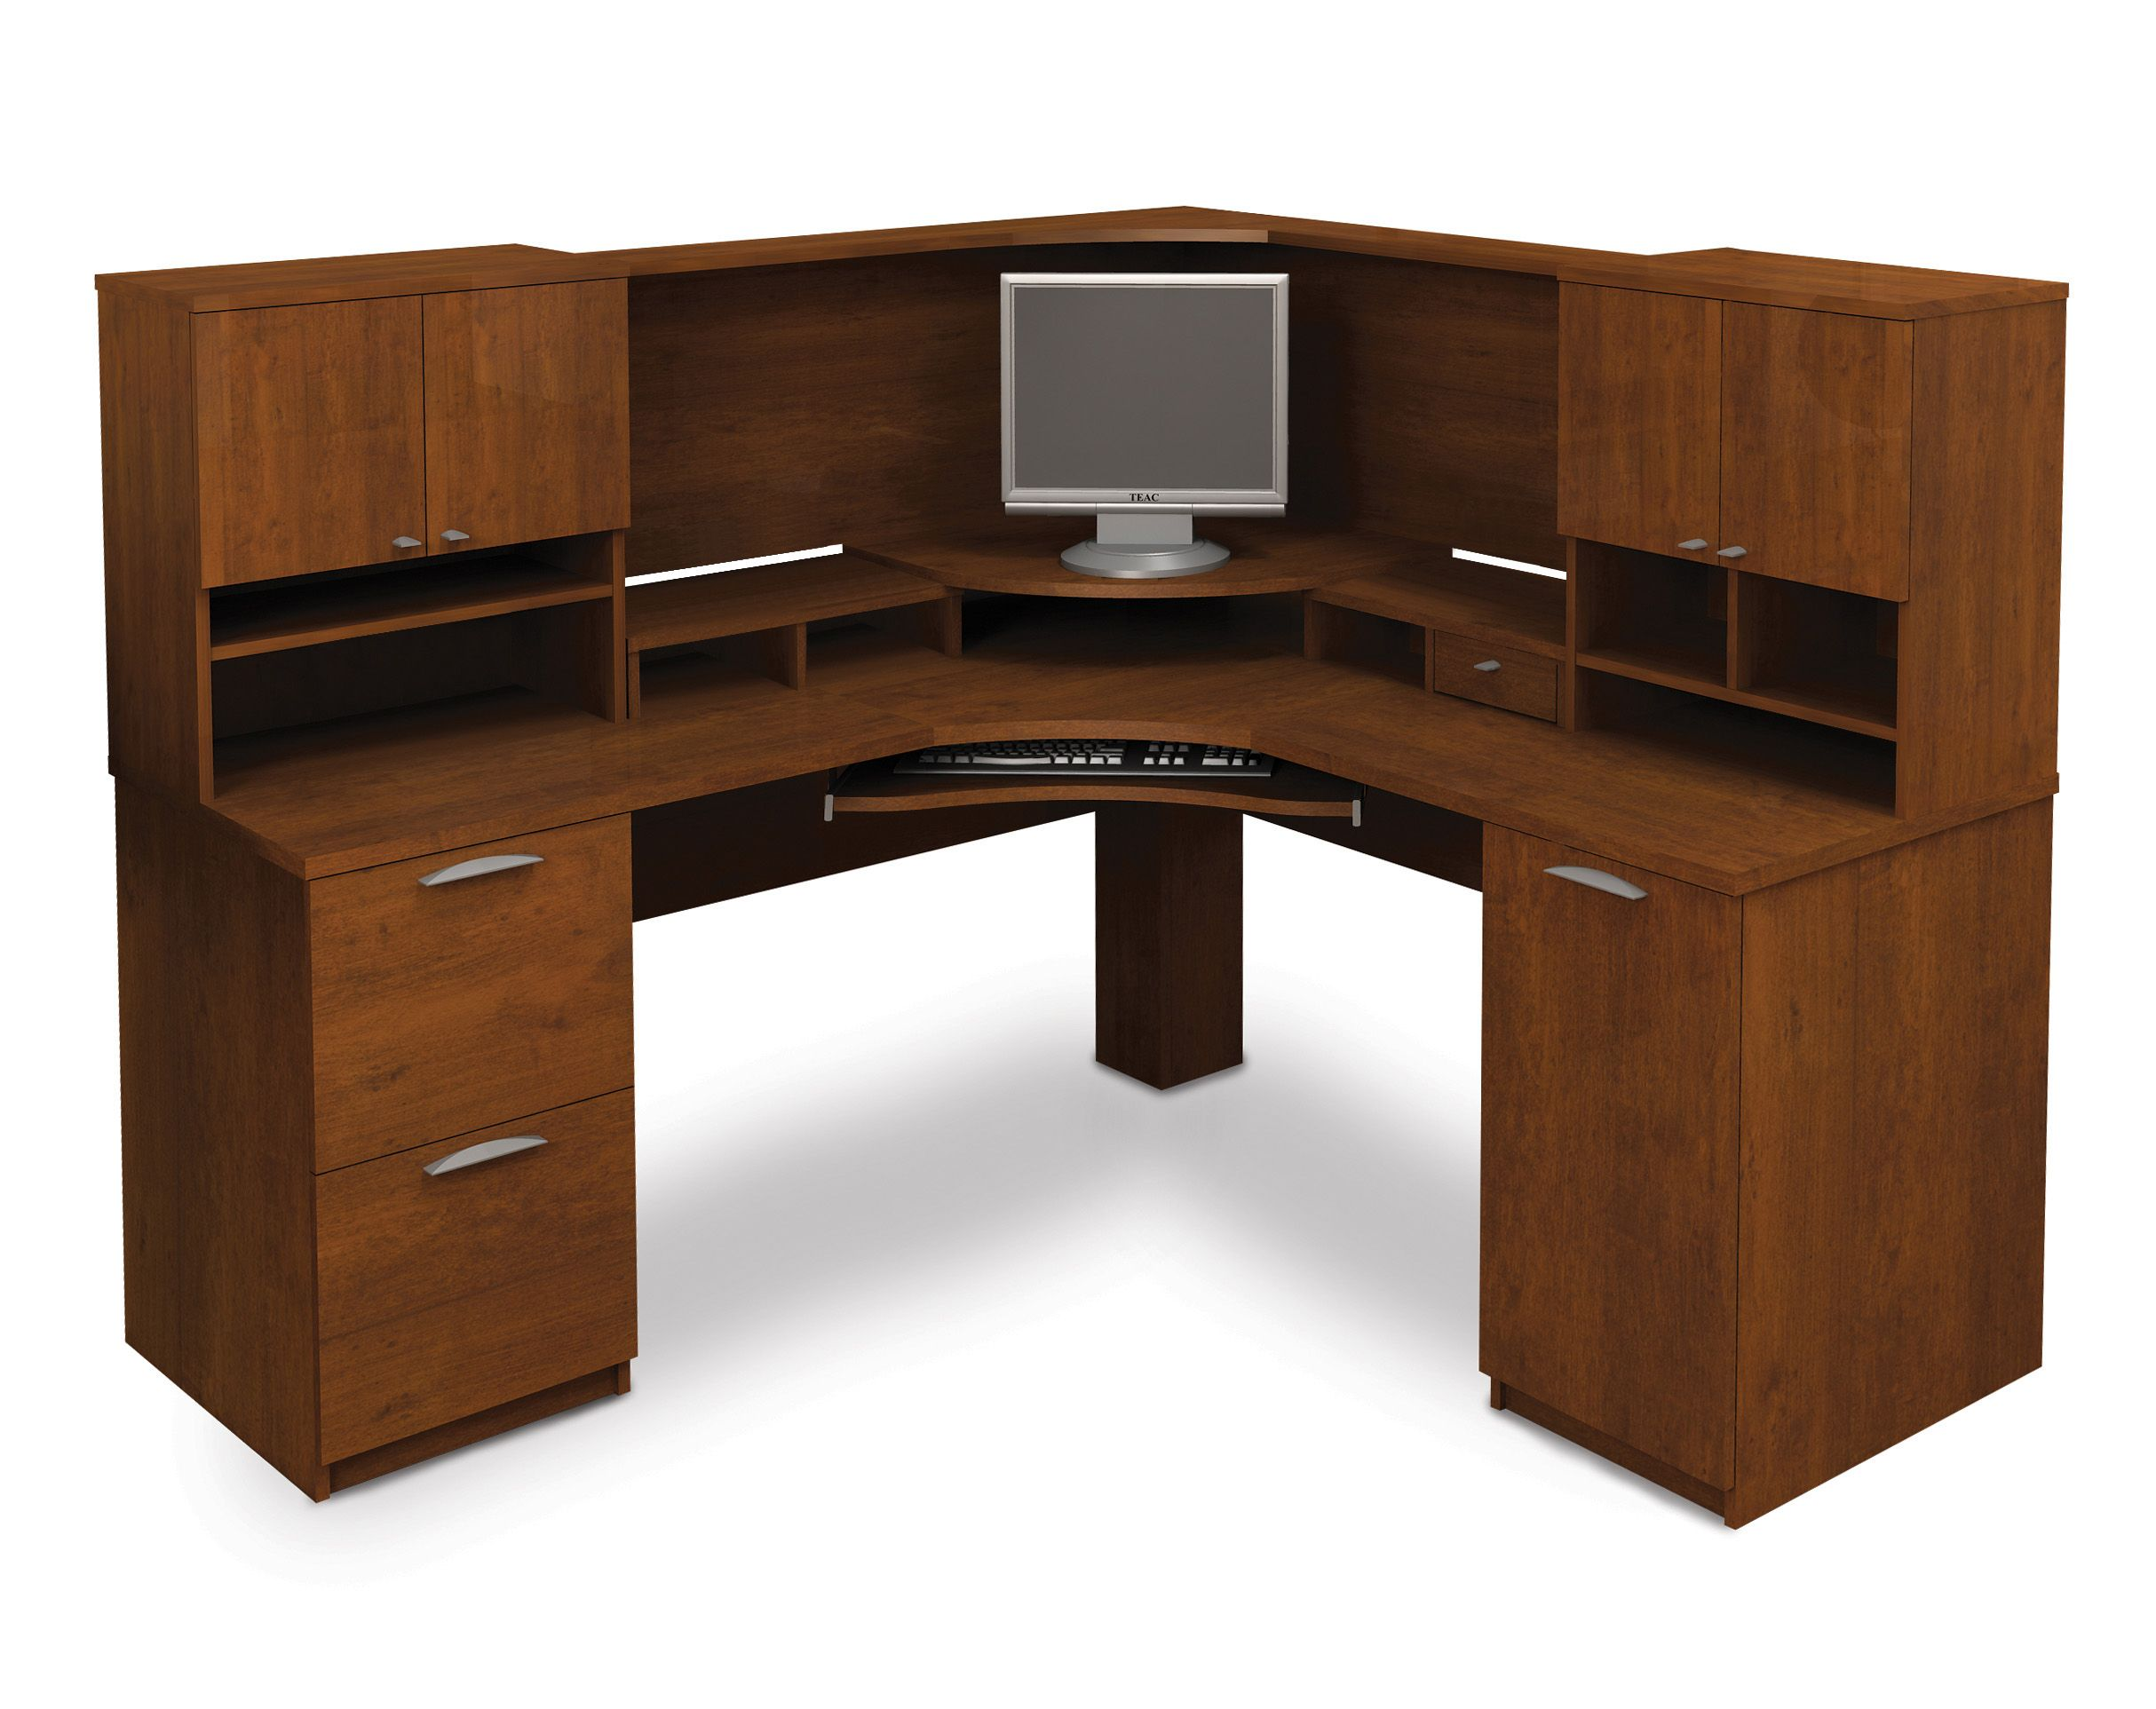 corner desk home office furniture shaped room. computer desk blueprints 25 bestar elite tuscany brown corner with hutch on home furniture office shaped room